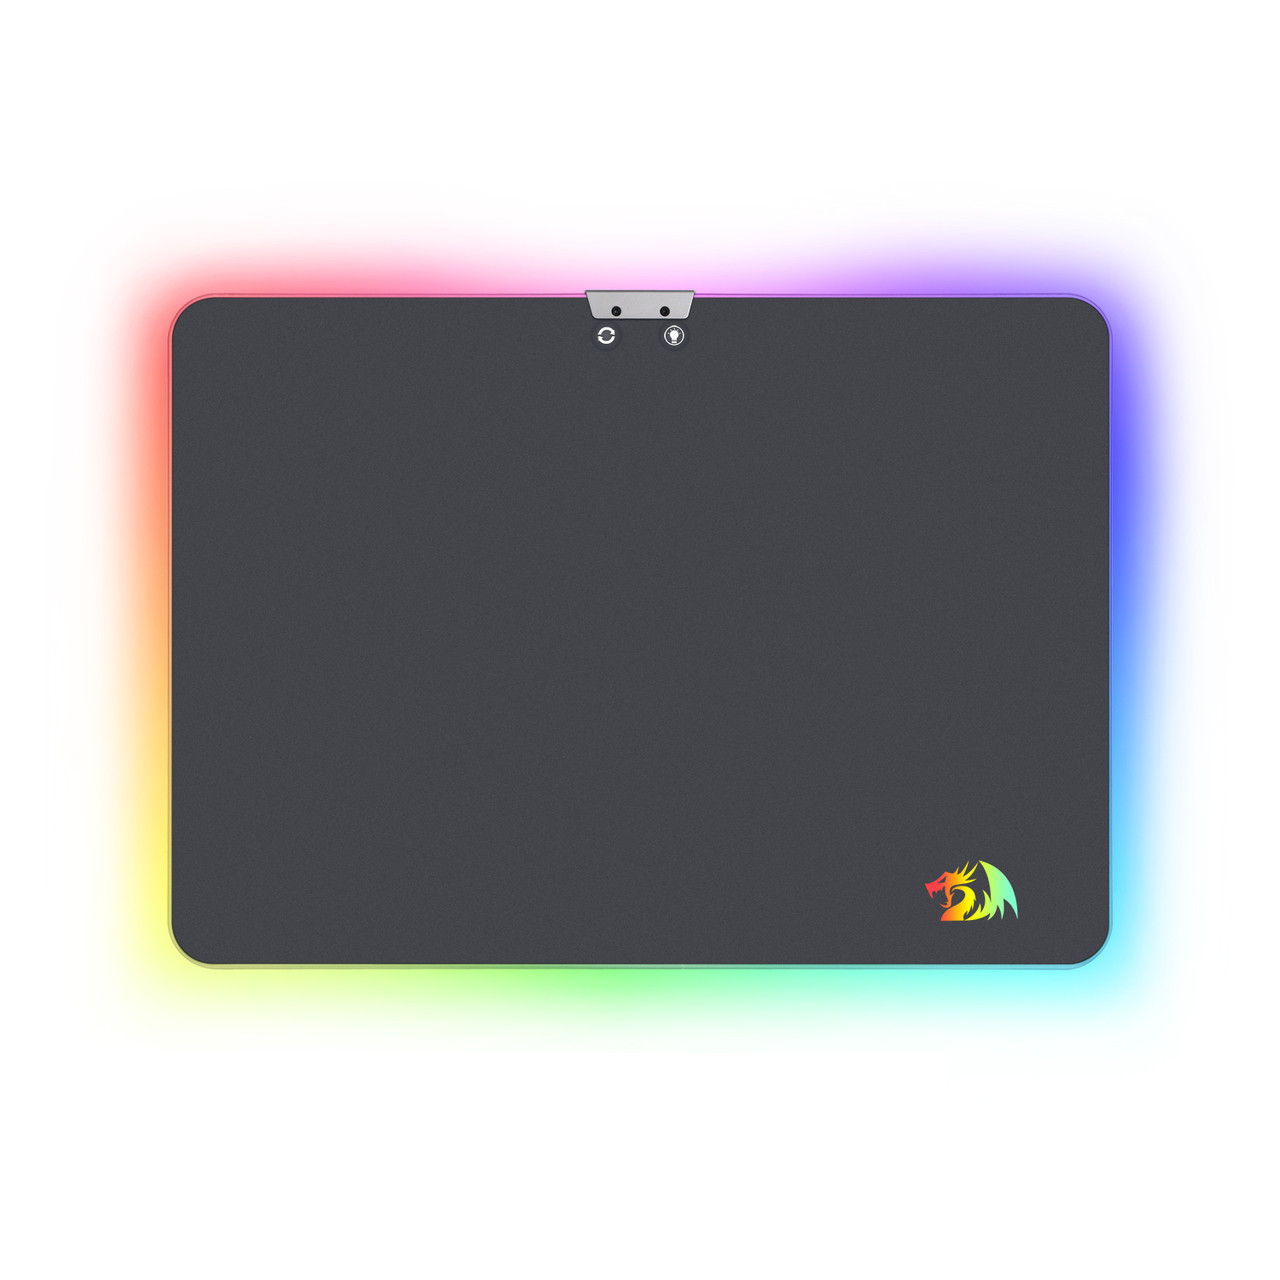 Redragon P010 RGB Mouse Pad, Wired LED Gaming Mouse Pad with 16 8 Million  Colors, Hard Non-Slip Rubber Surface Optimized for All MMO Computer Mouse